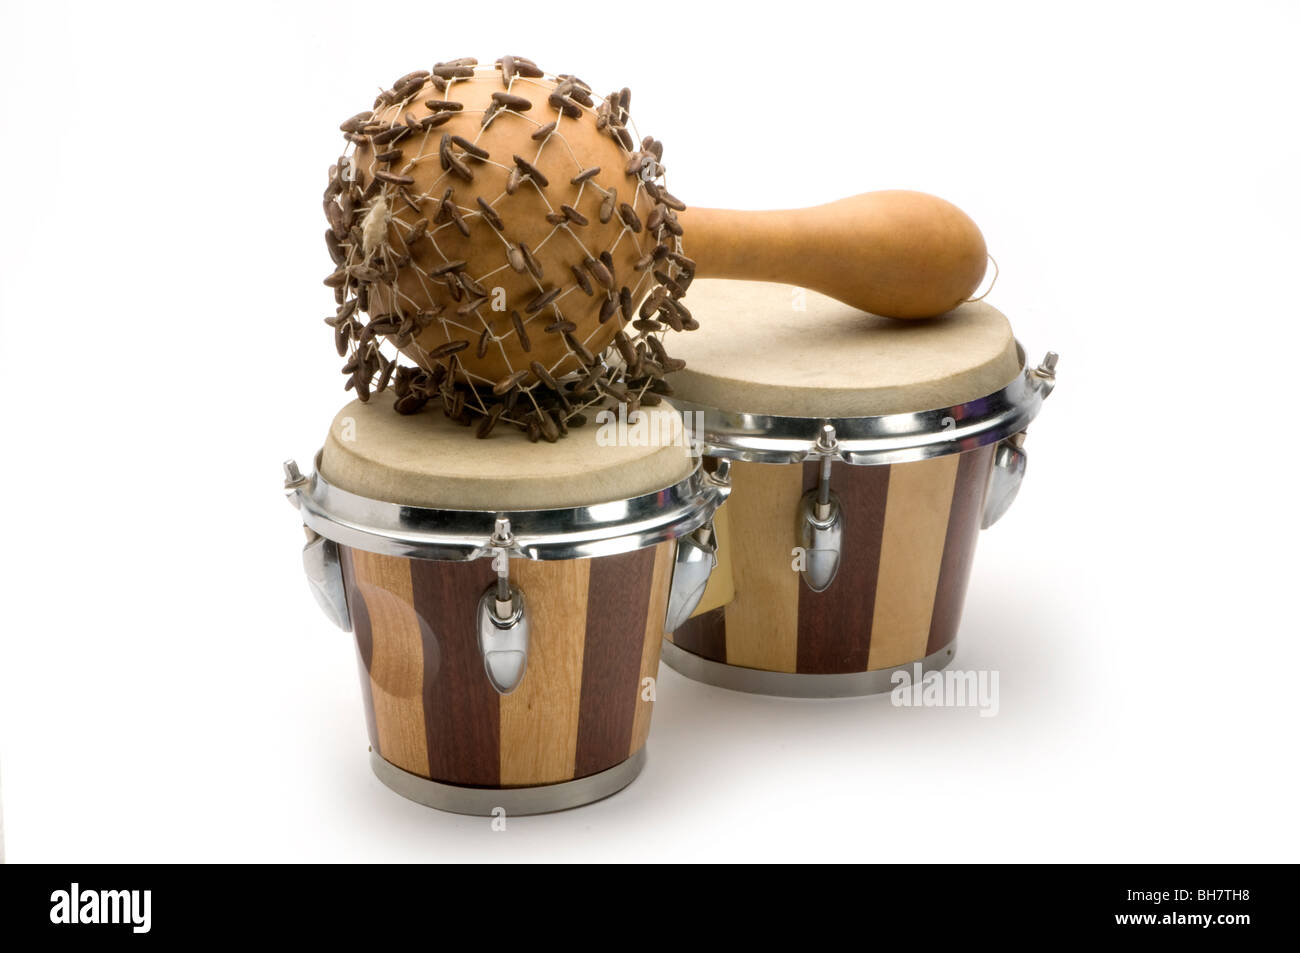 percussion instruments stock photo 27832484 alamy